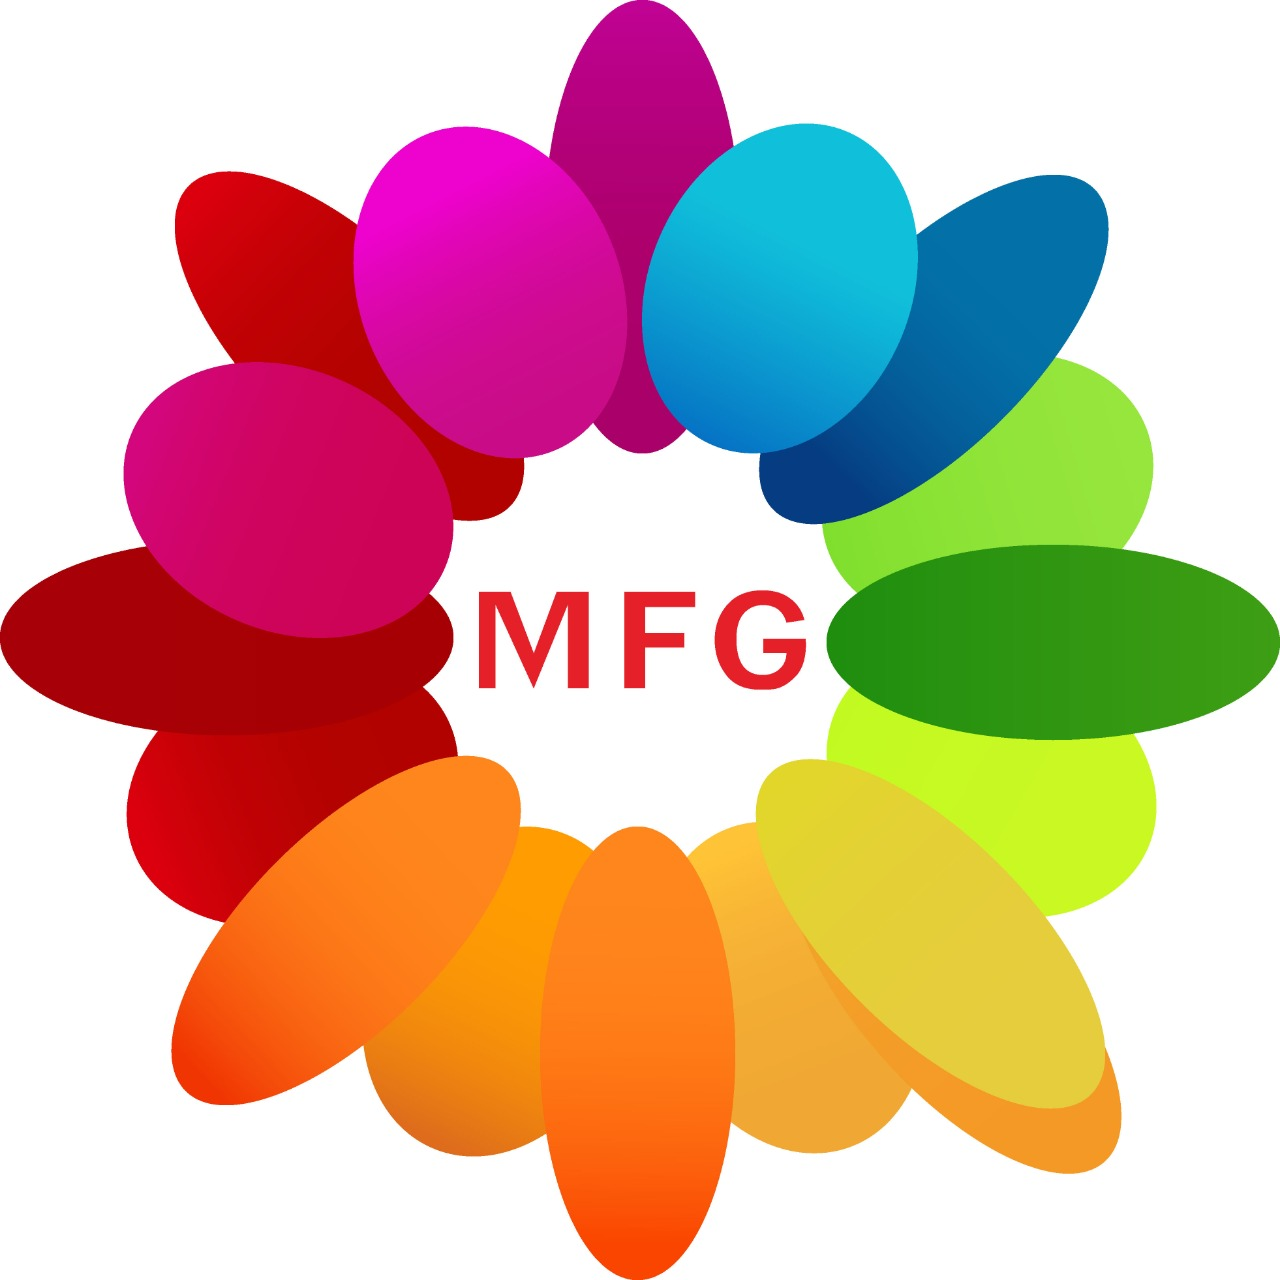 Bunch of 5 pink asiatic lilies with box of assorted dryfruits